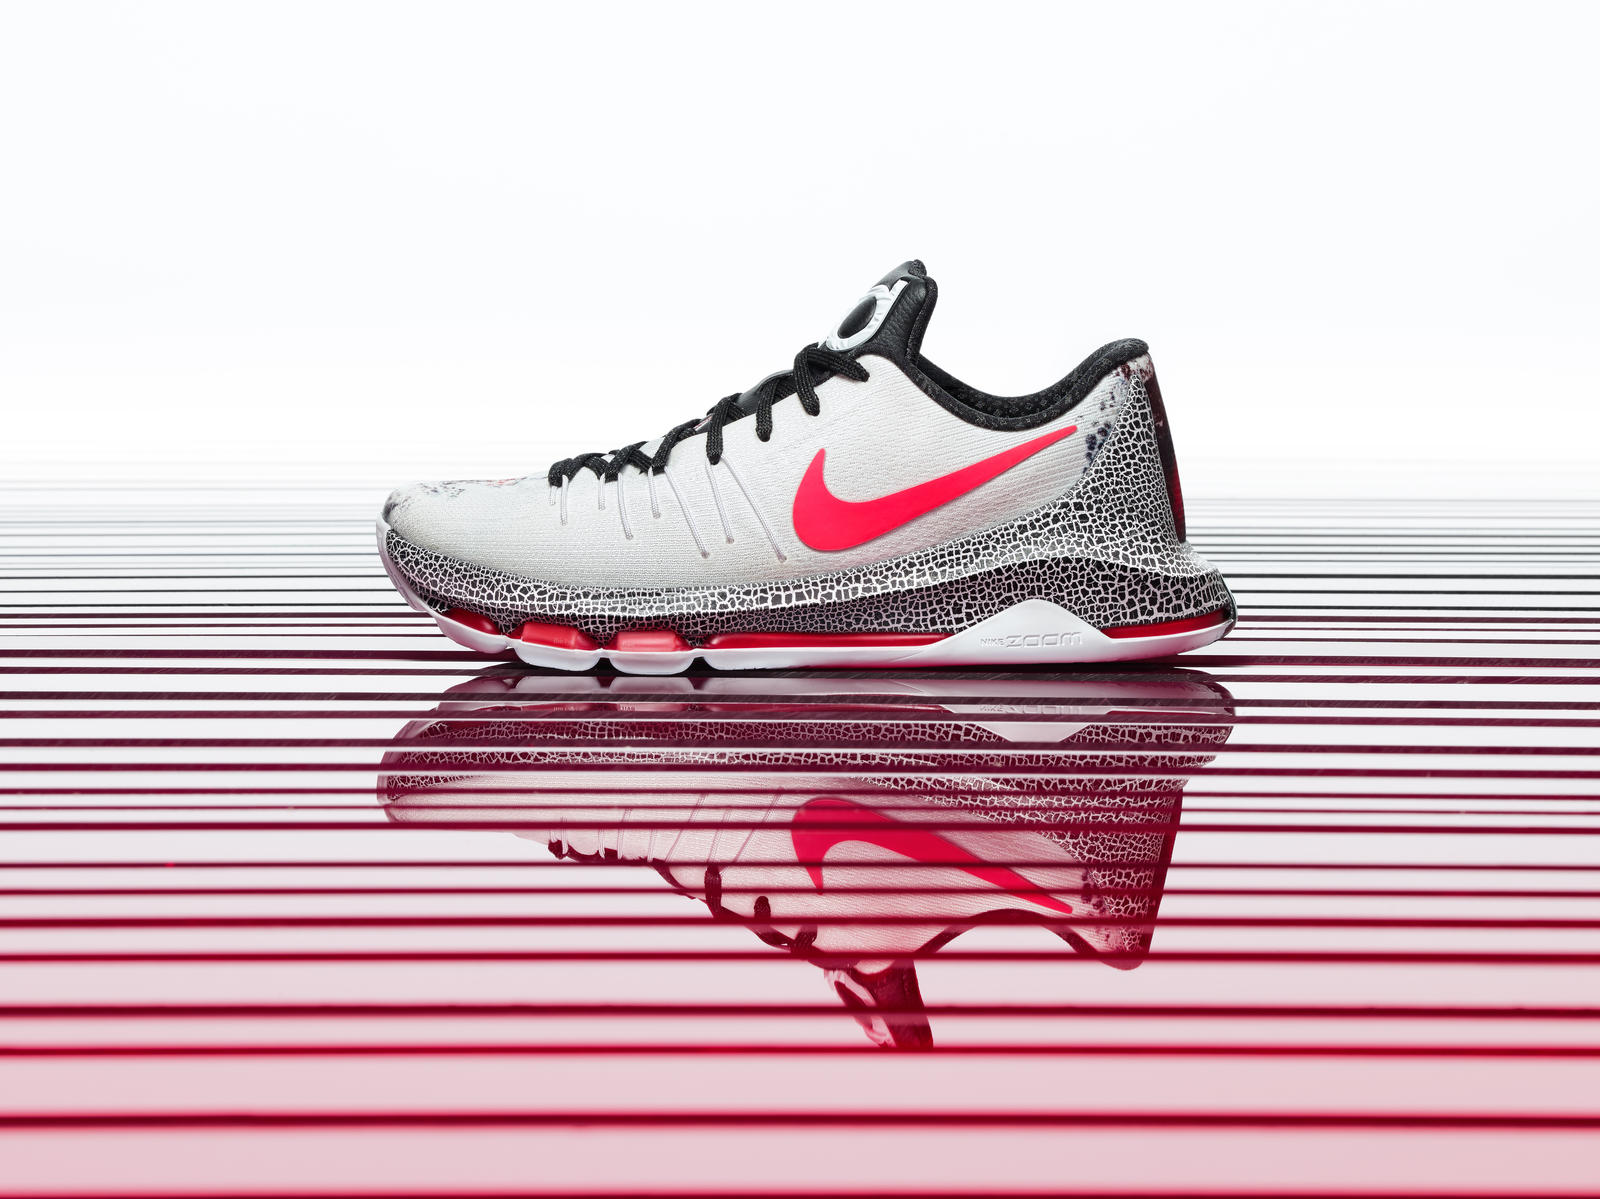 Kd Fire And Ice Shoes